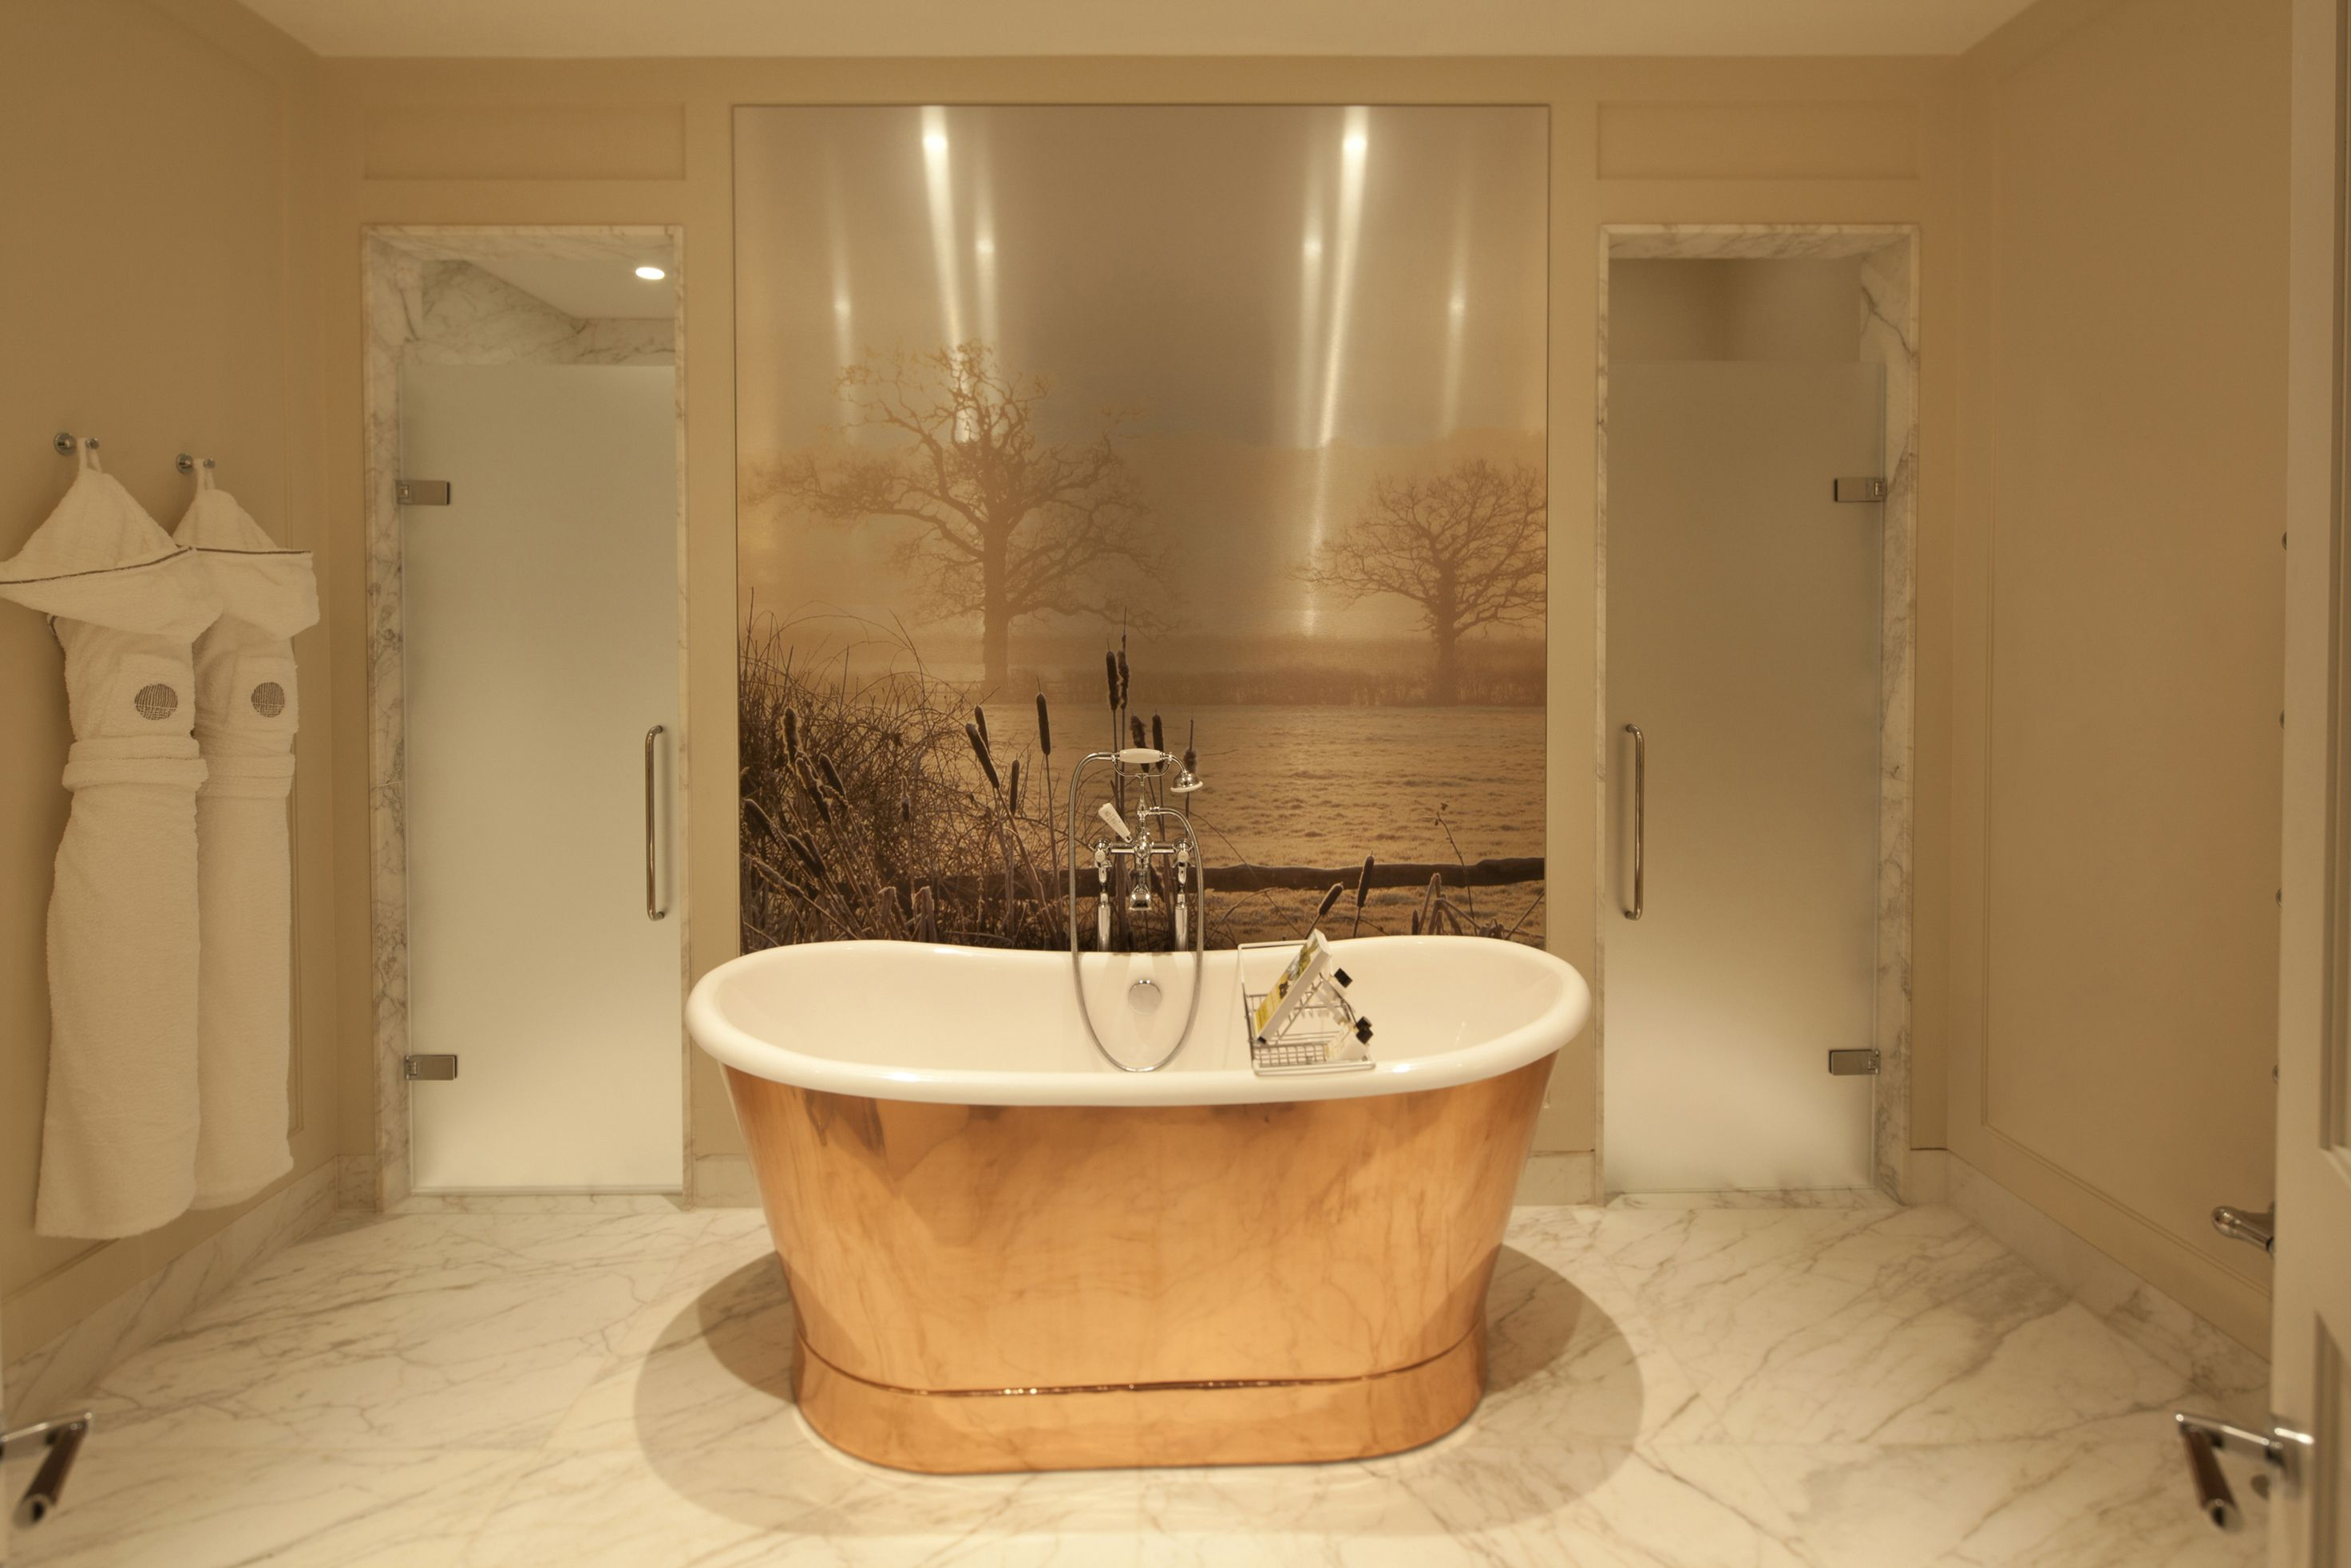 coworth park hotel in berkshire, united kingdom | ~places to see